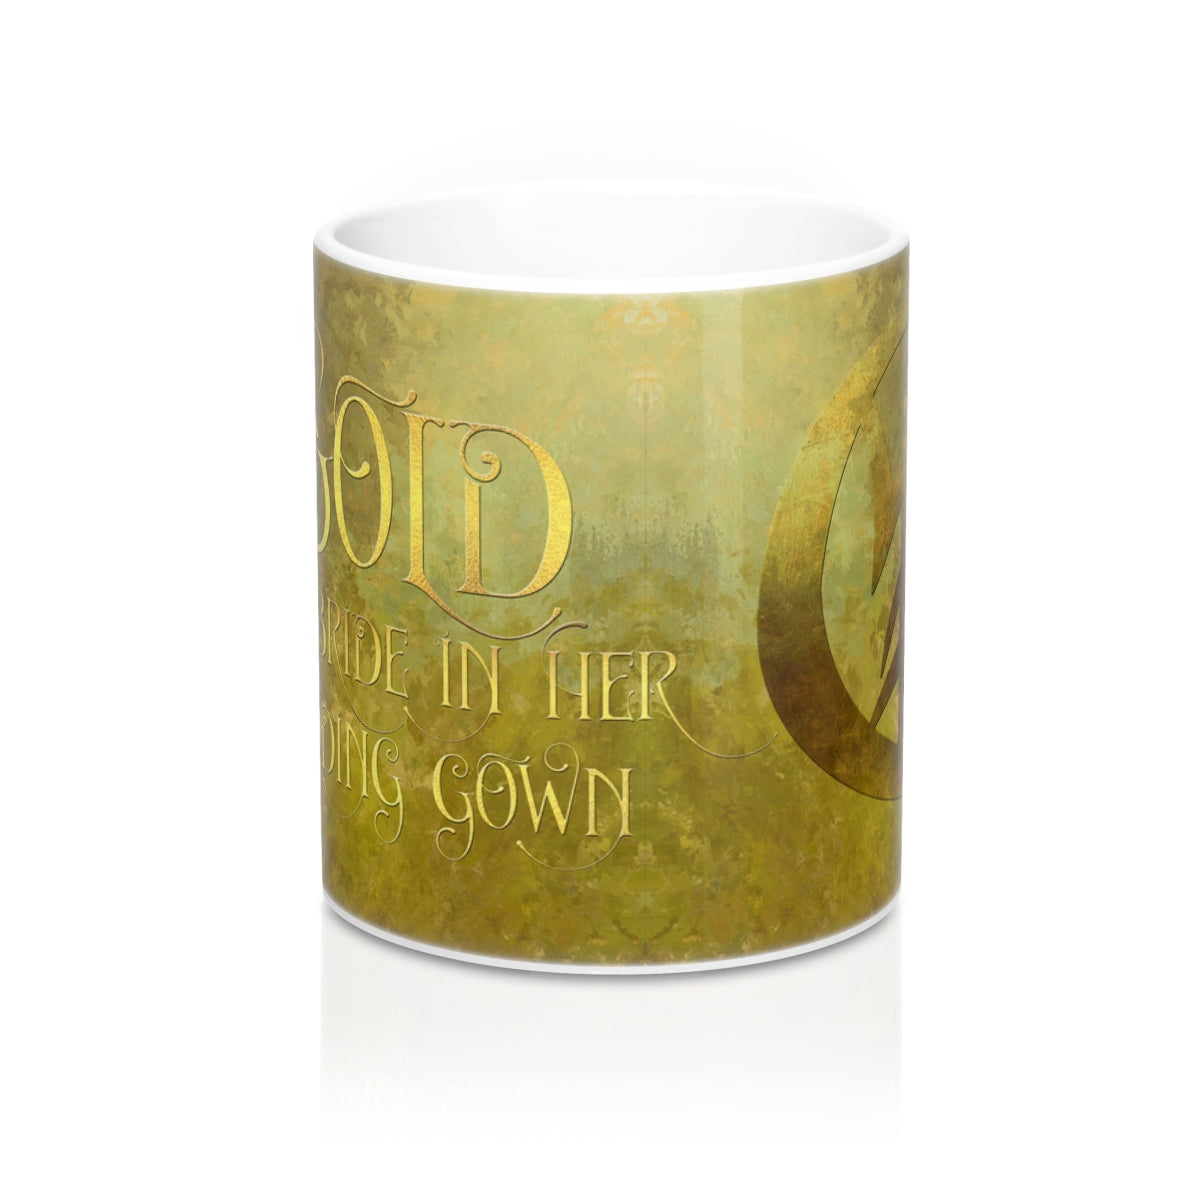 GOLD for a bride in her wedding gown. Shadowhunter Children's Rhyme Mug - LitLifeCo.